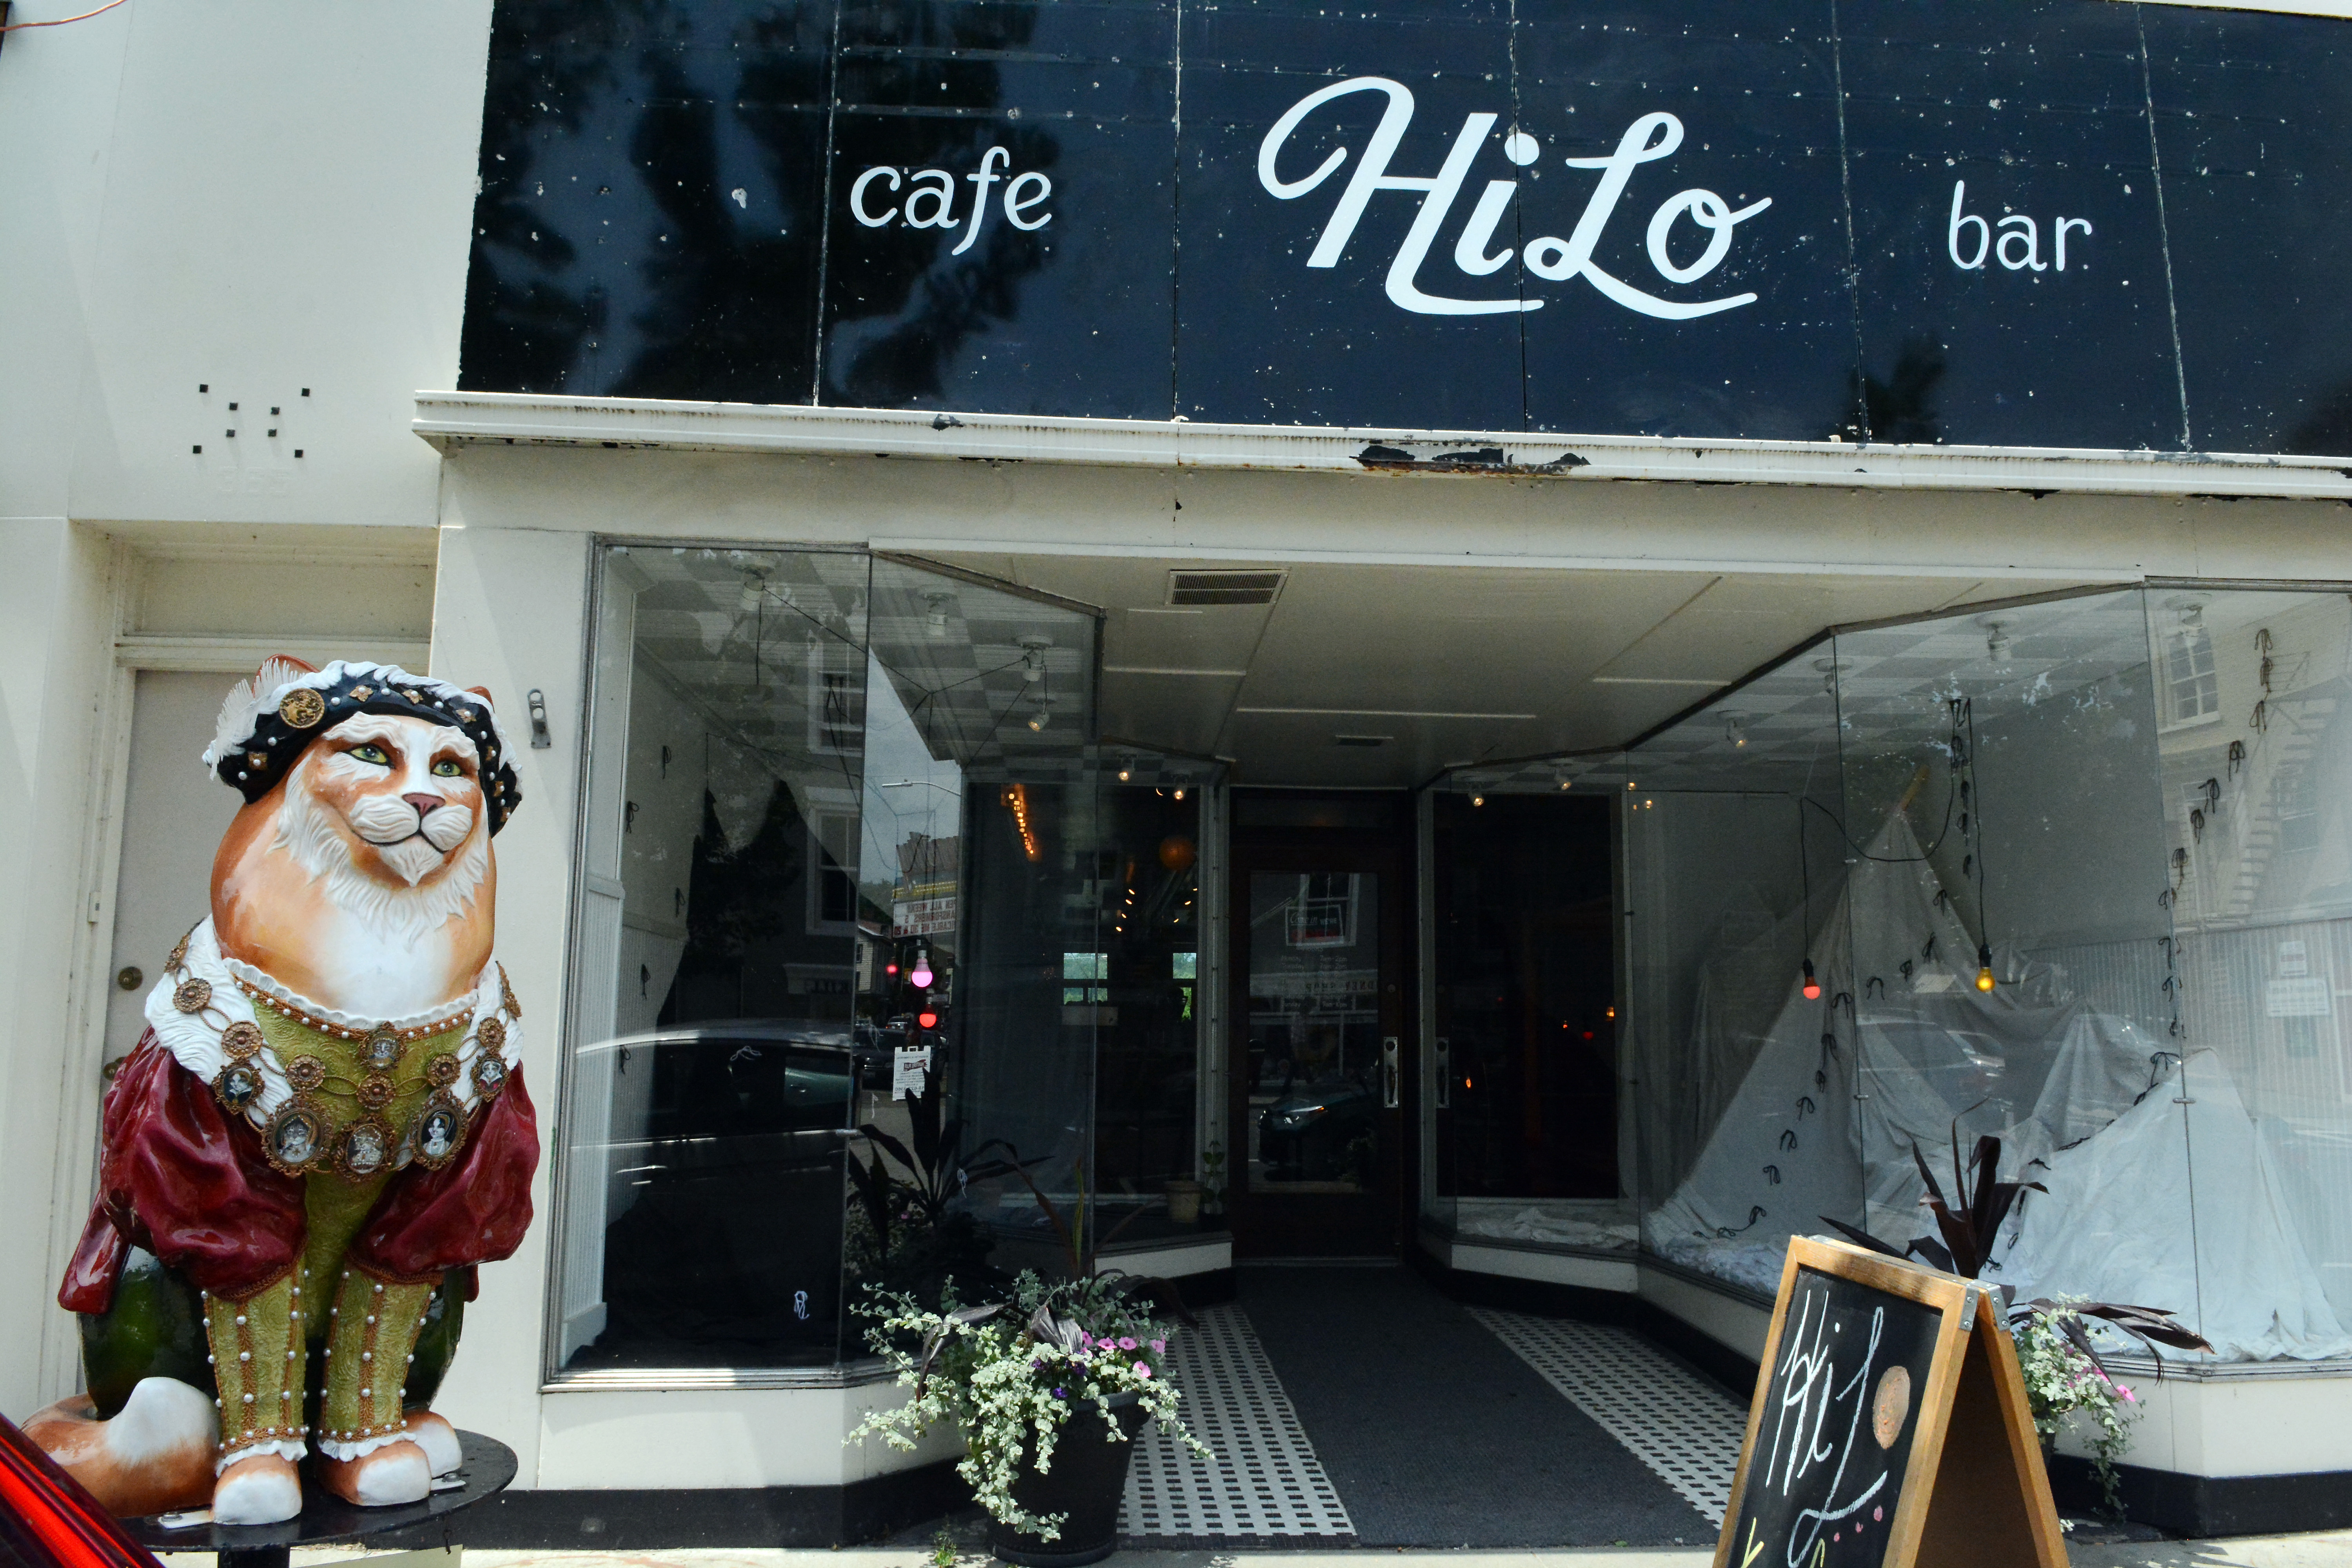 hilo-cafe-bar-gallery-catskill-ny-invest-in-greene.jpg